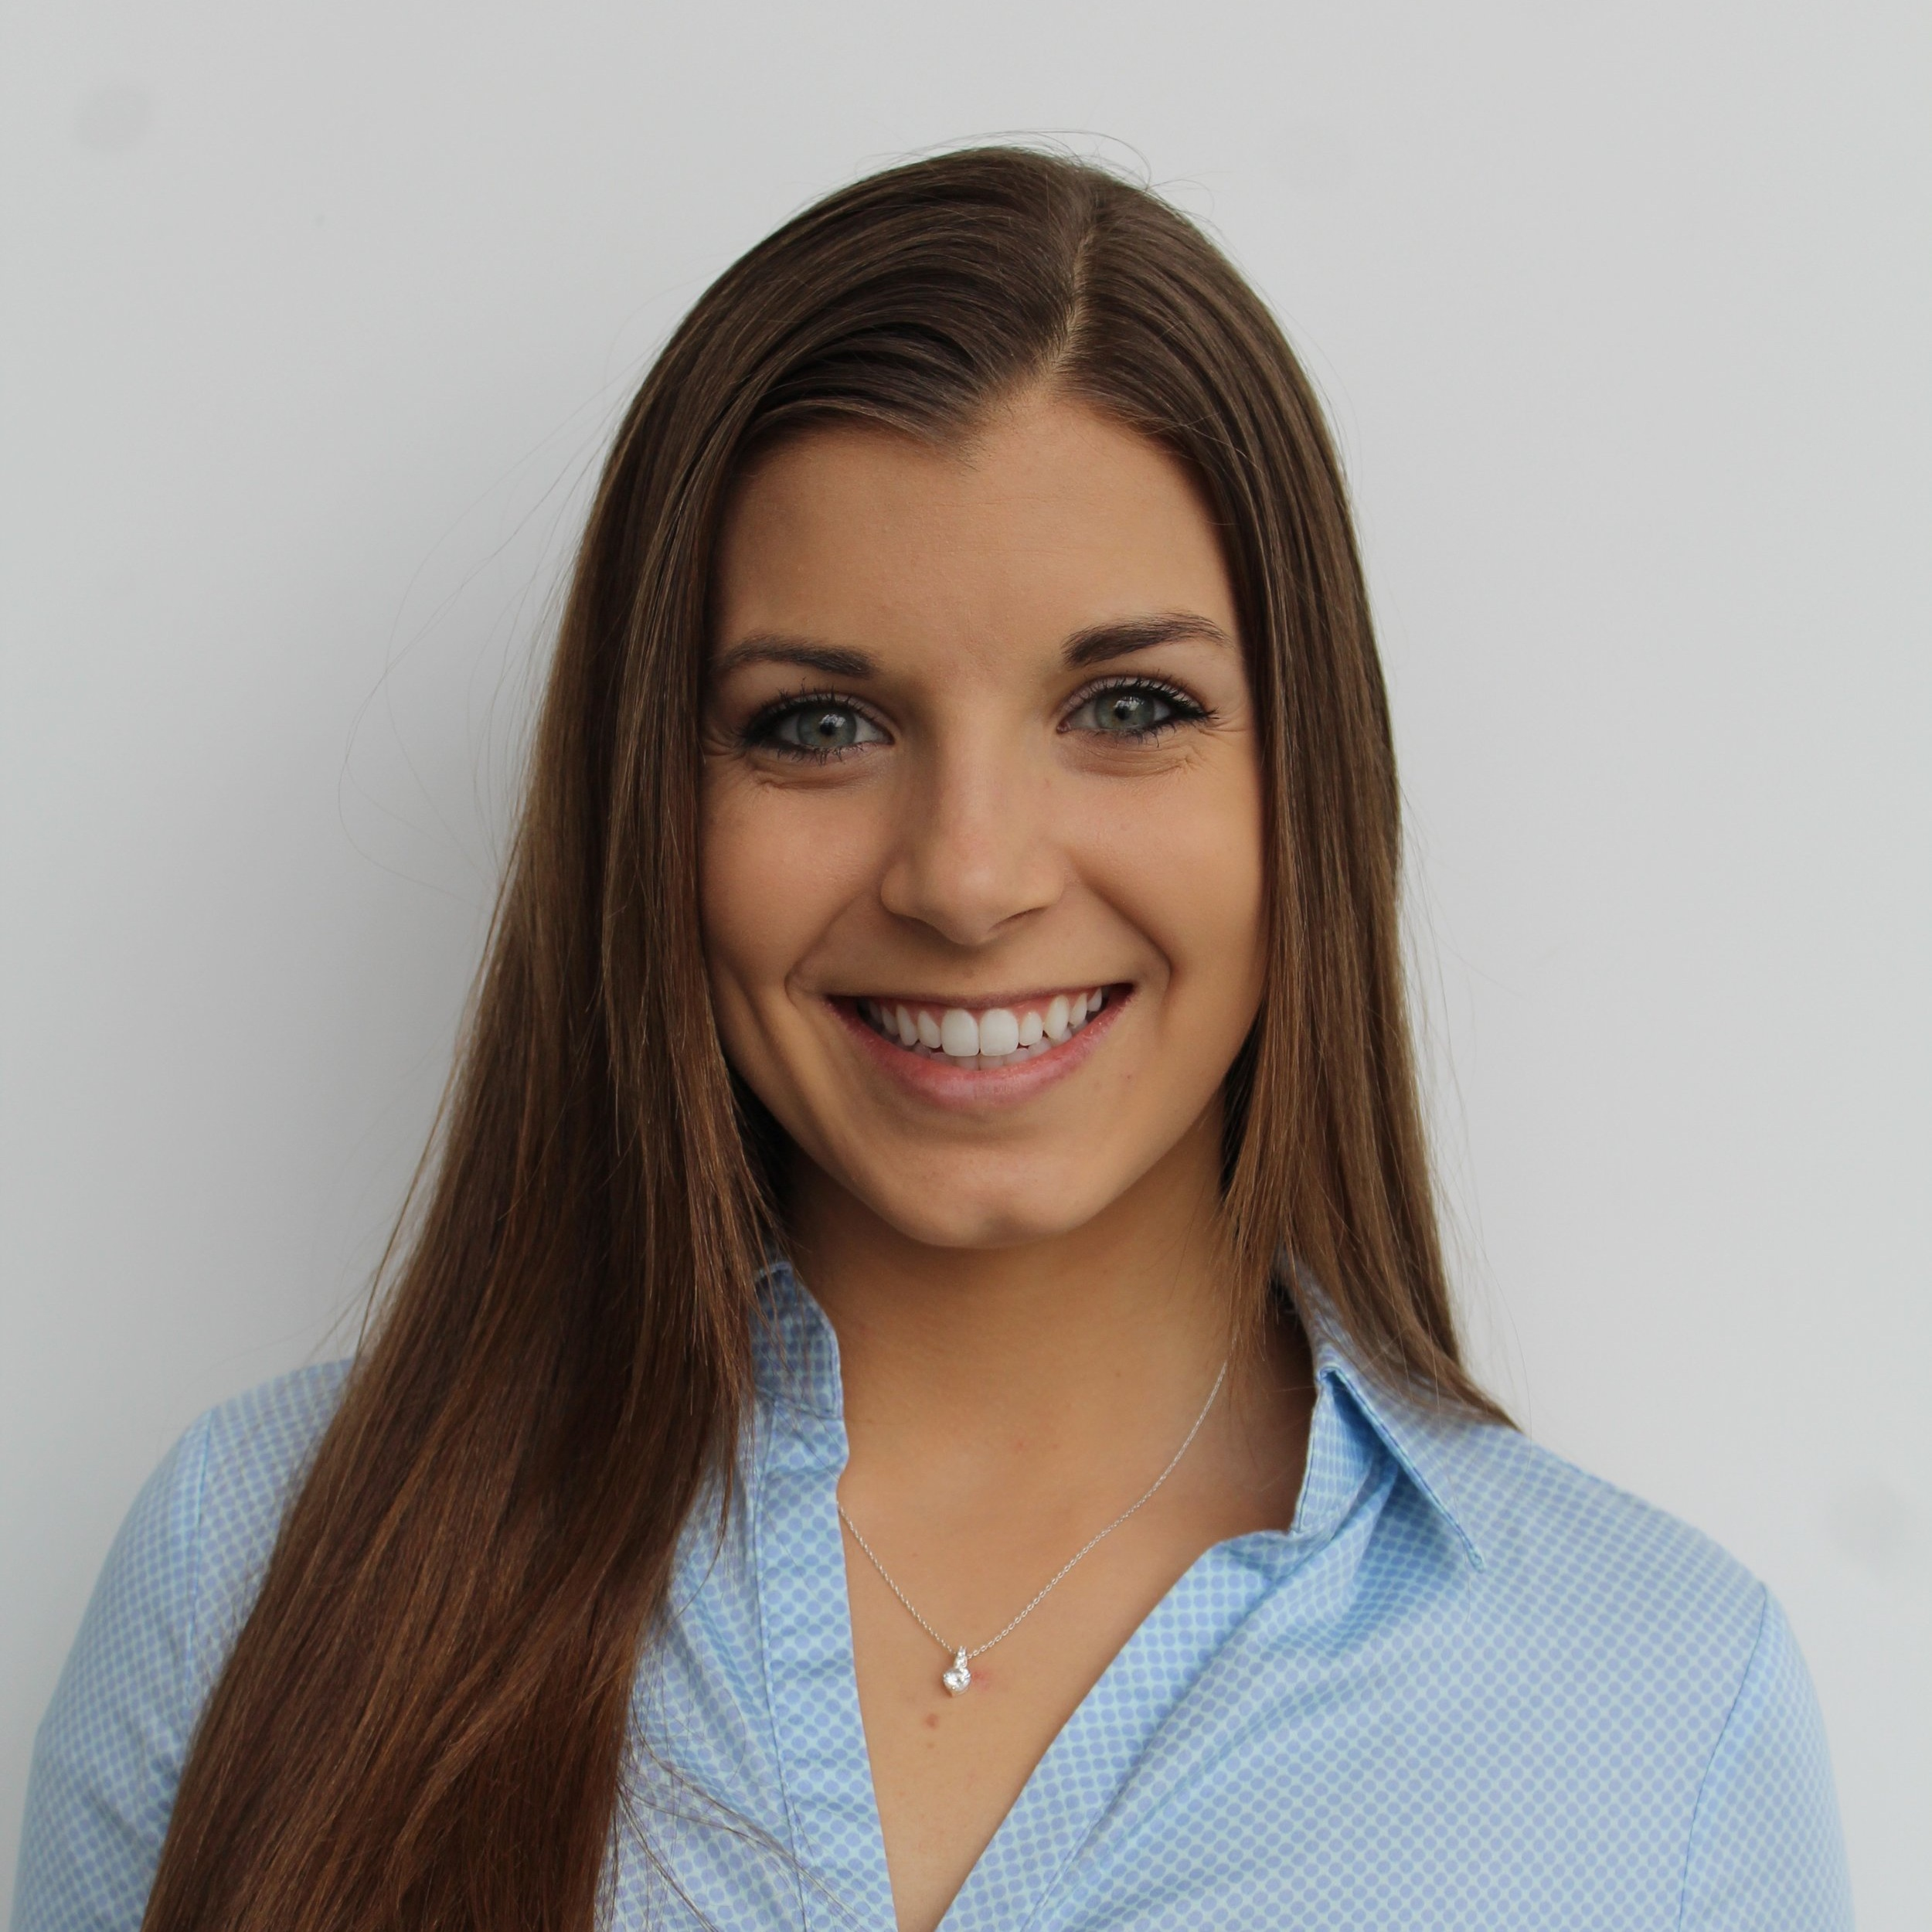 Bri Makaric, CEO and Founder of BRITE Bites